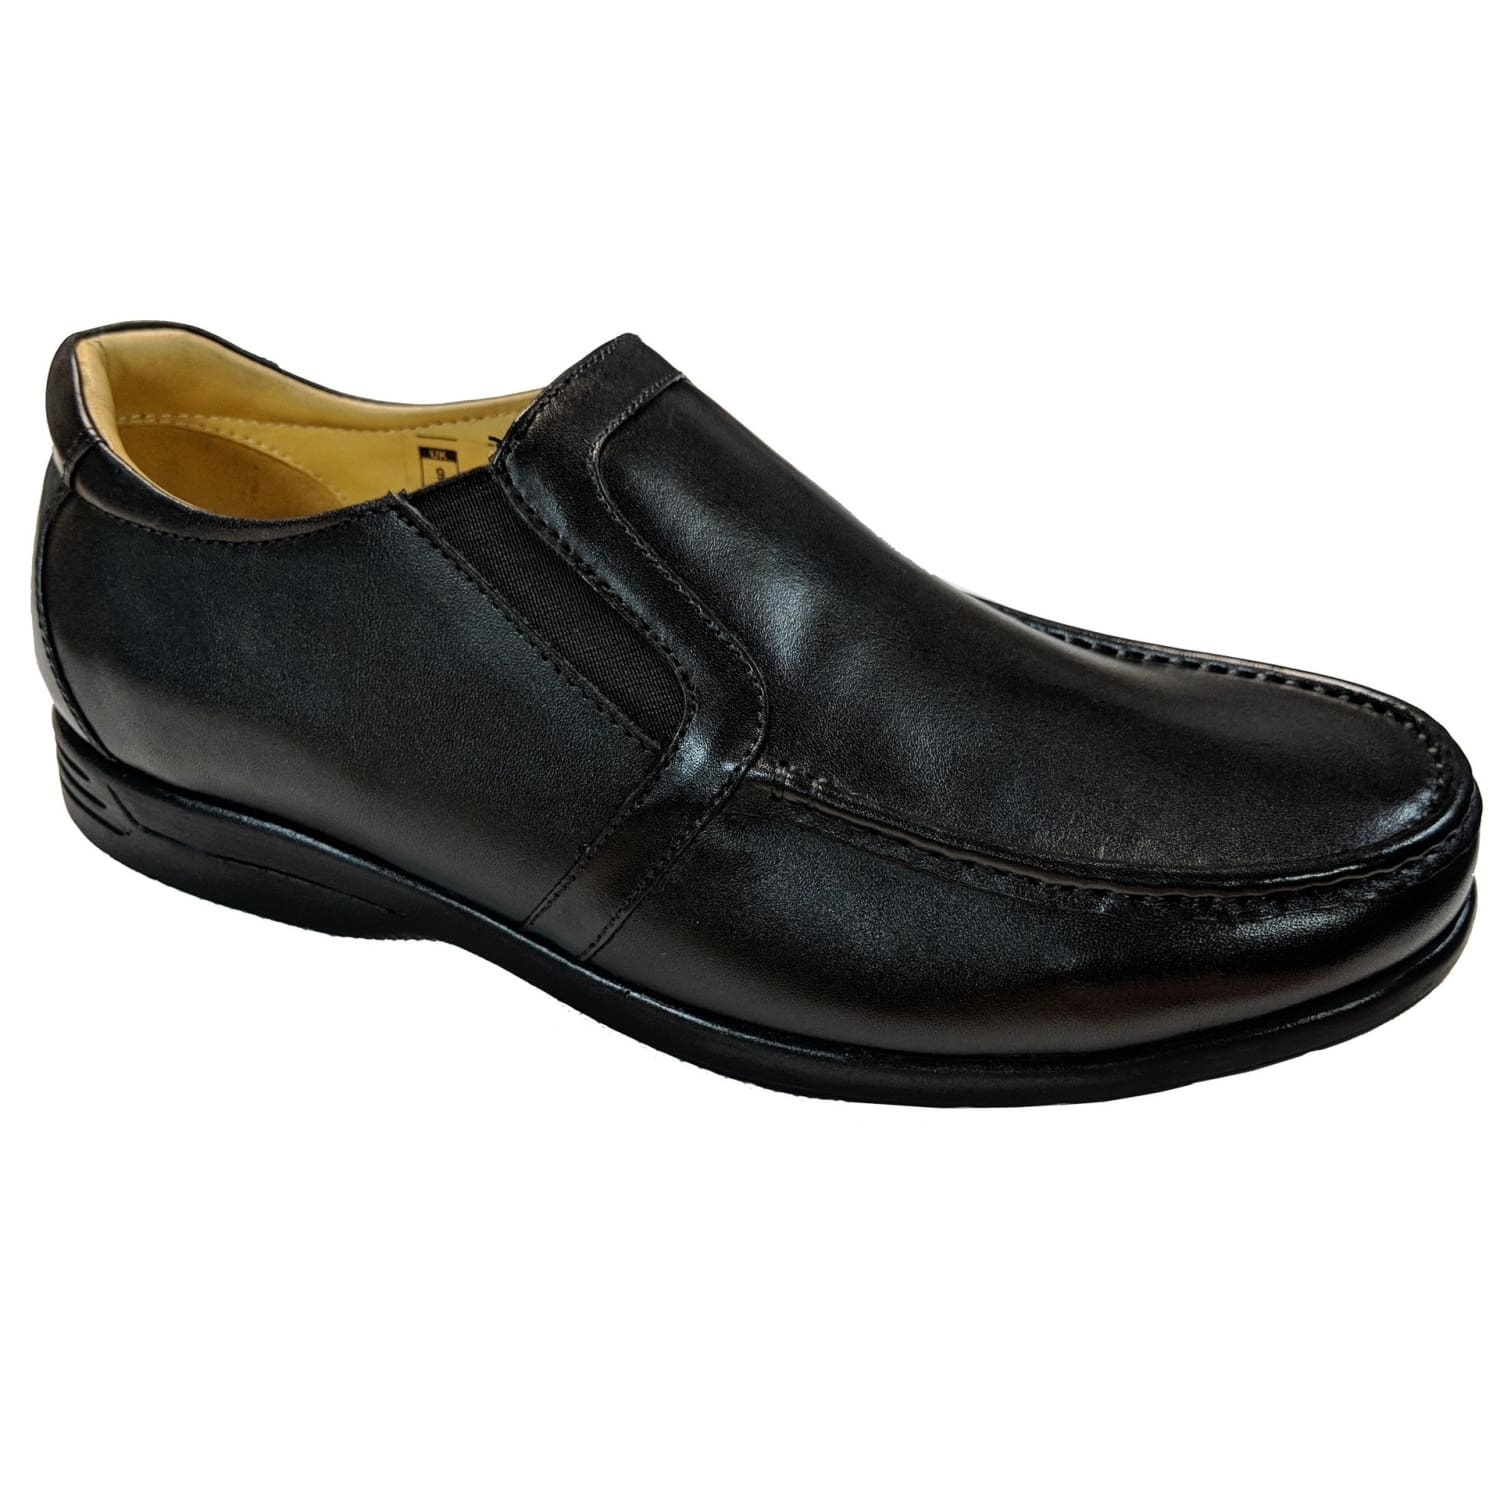 Fleet & Foster Shoes - Gordon - Black 1